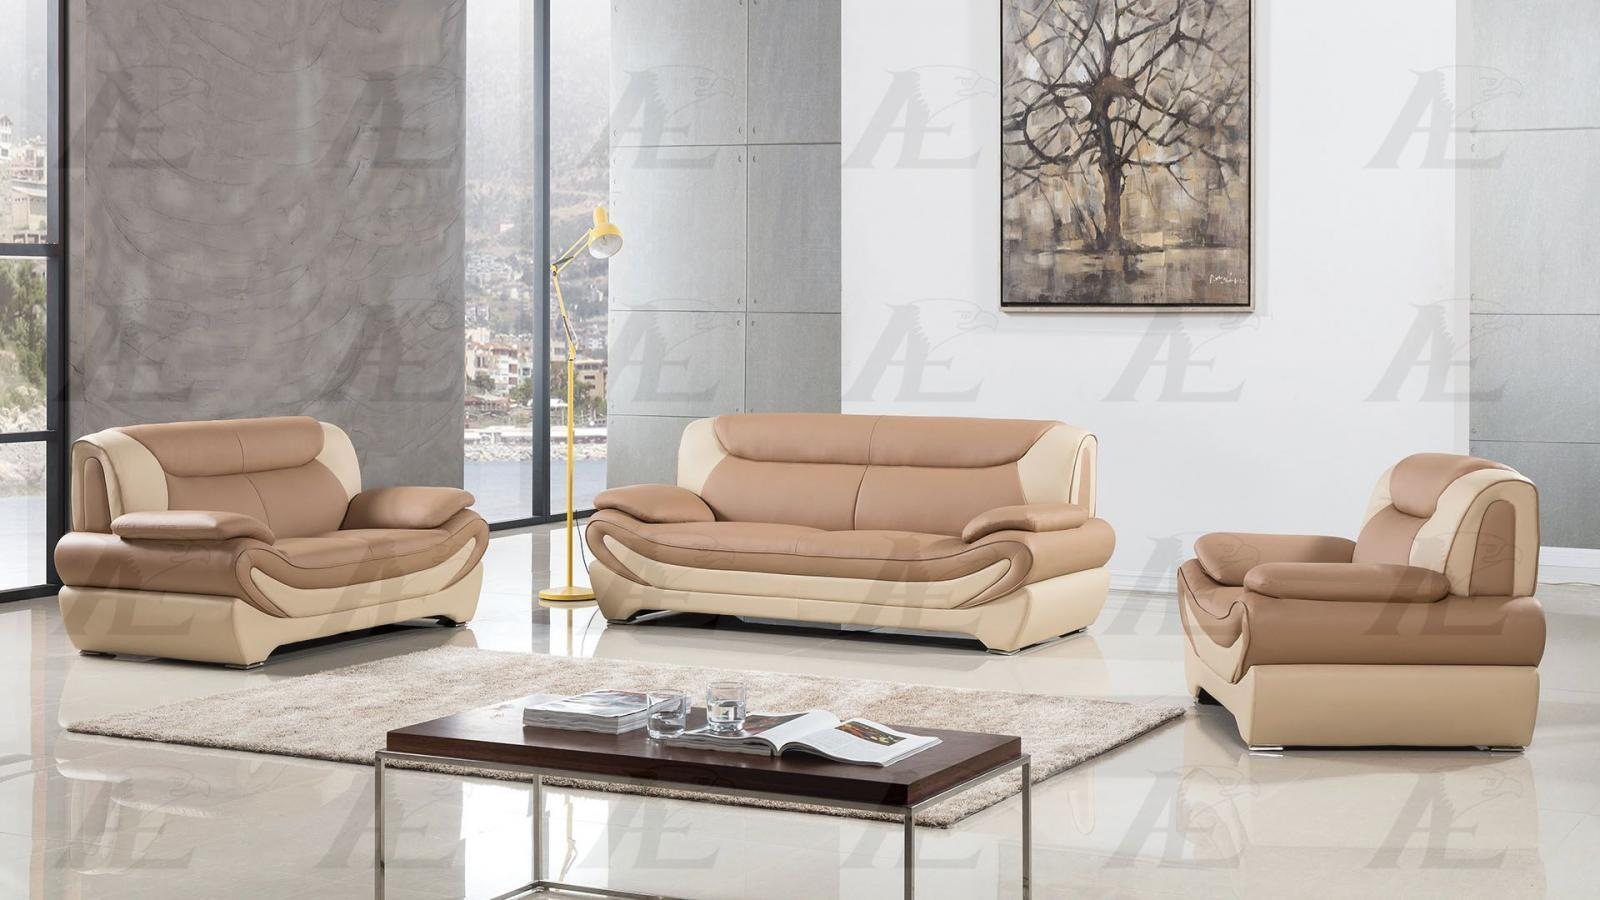 American Eagle AE209-CA.IV Camel/Ivory Sofa Loveseat Chair Set F/Leather 3Pcs